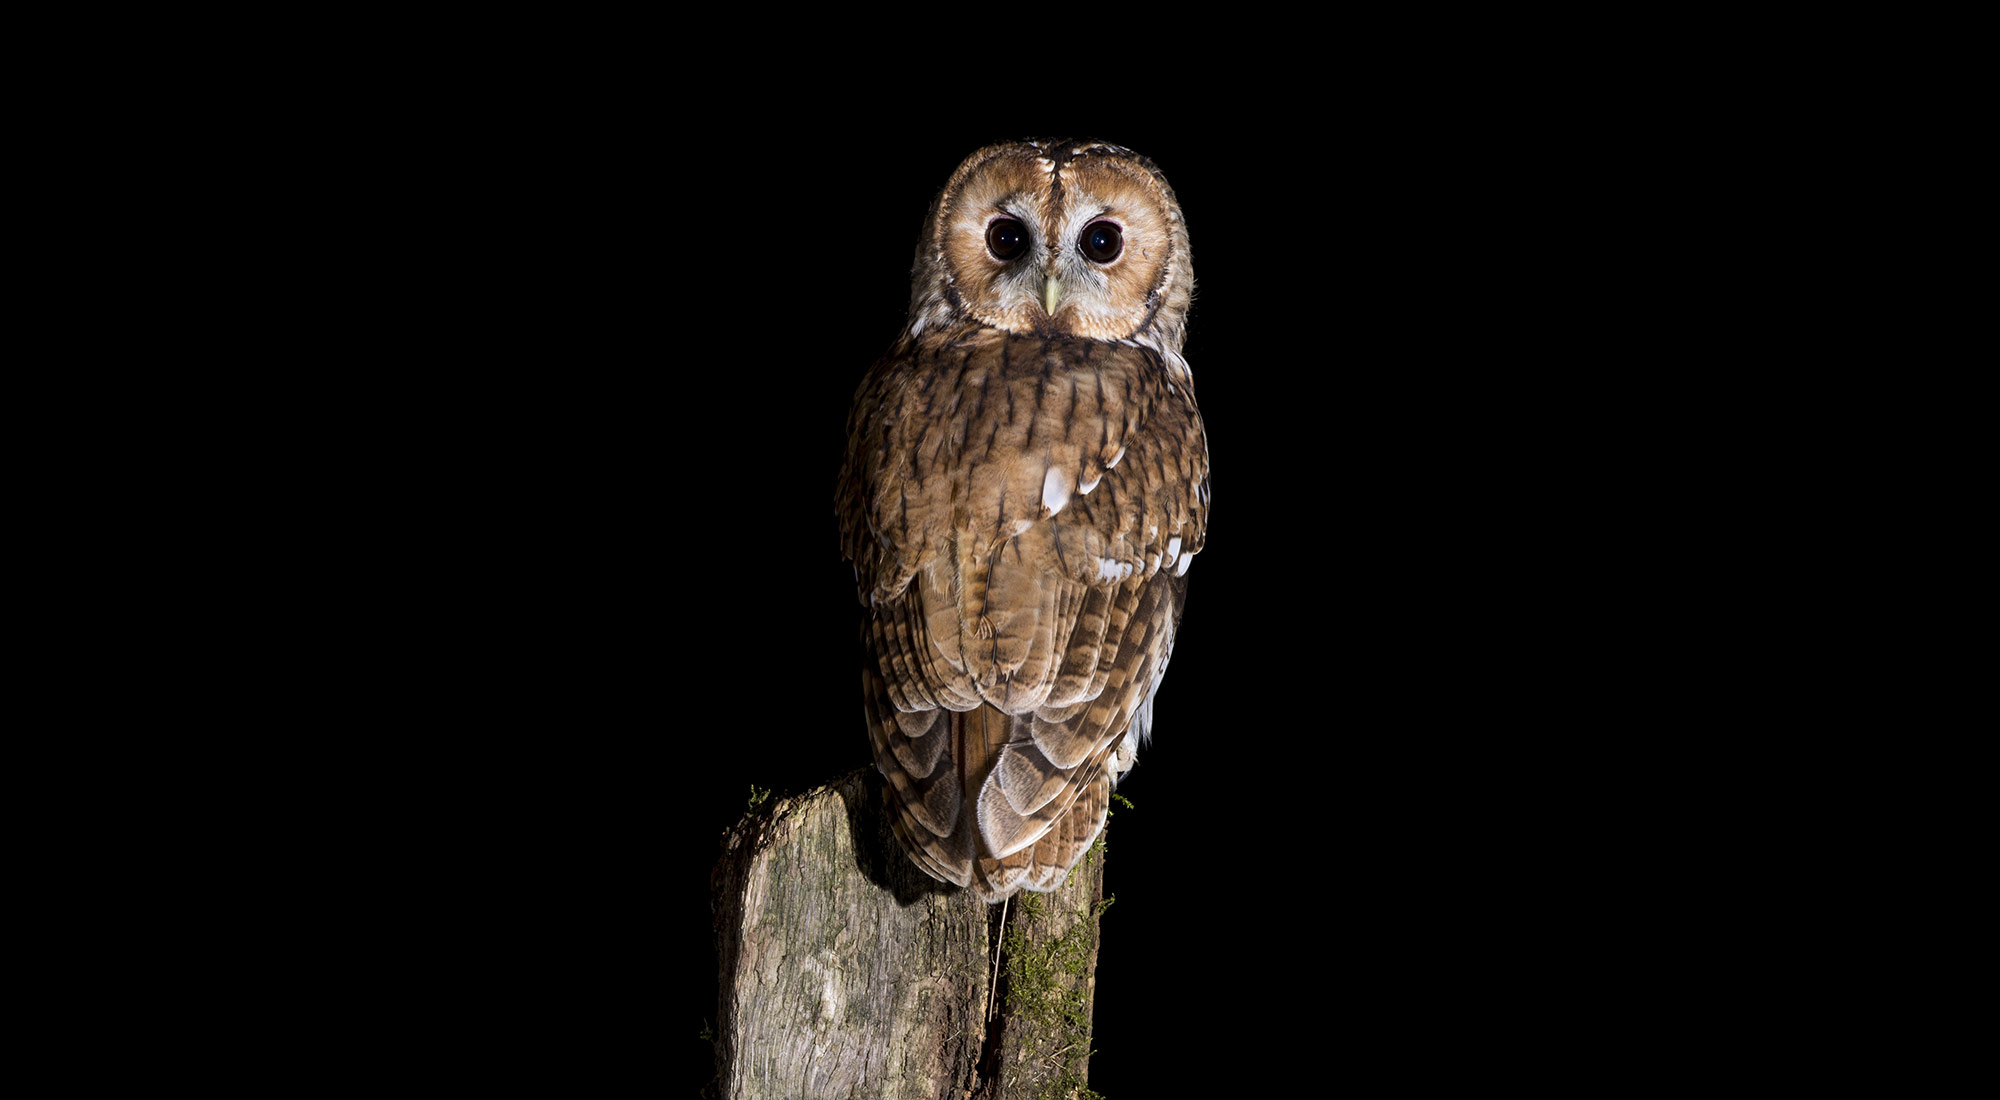 Wildlife Photography Hides Hide photography Bourne Lincolnshire perched post tawny owl tom robinson night nighttime photo flash nikon